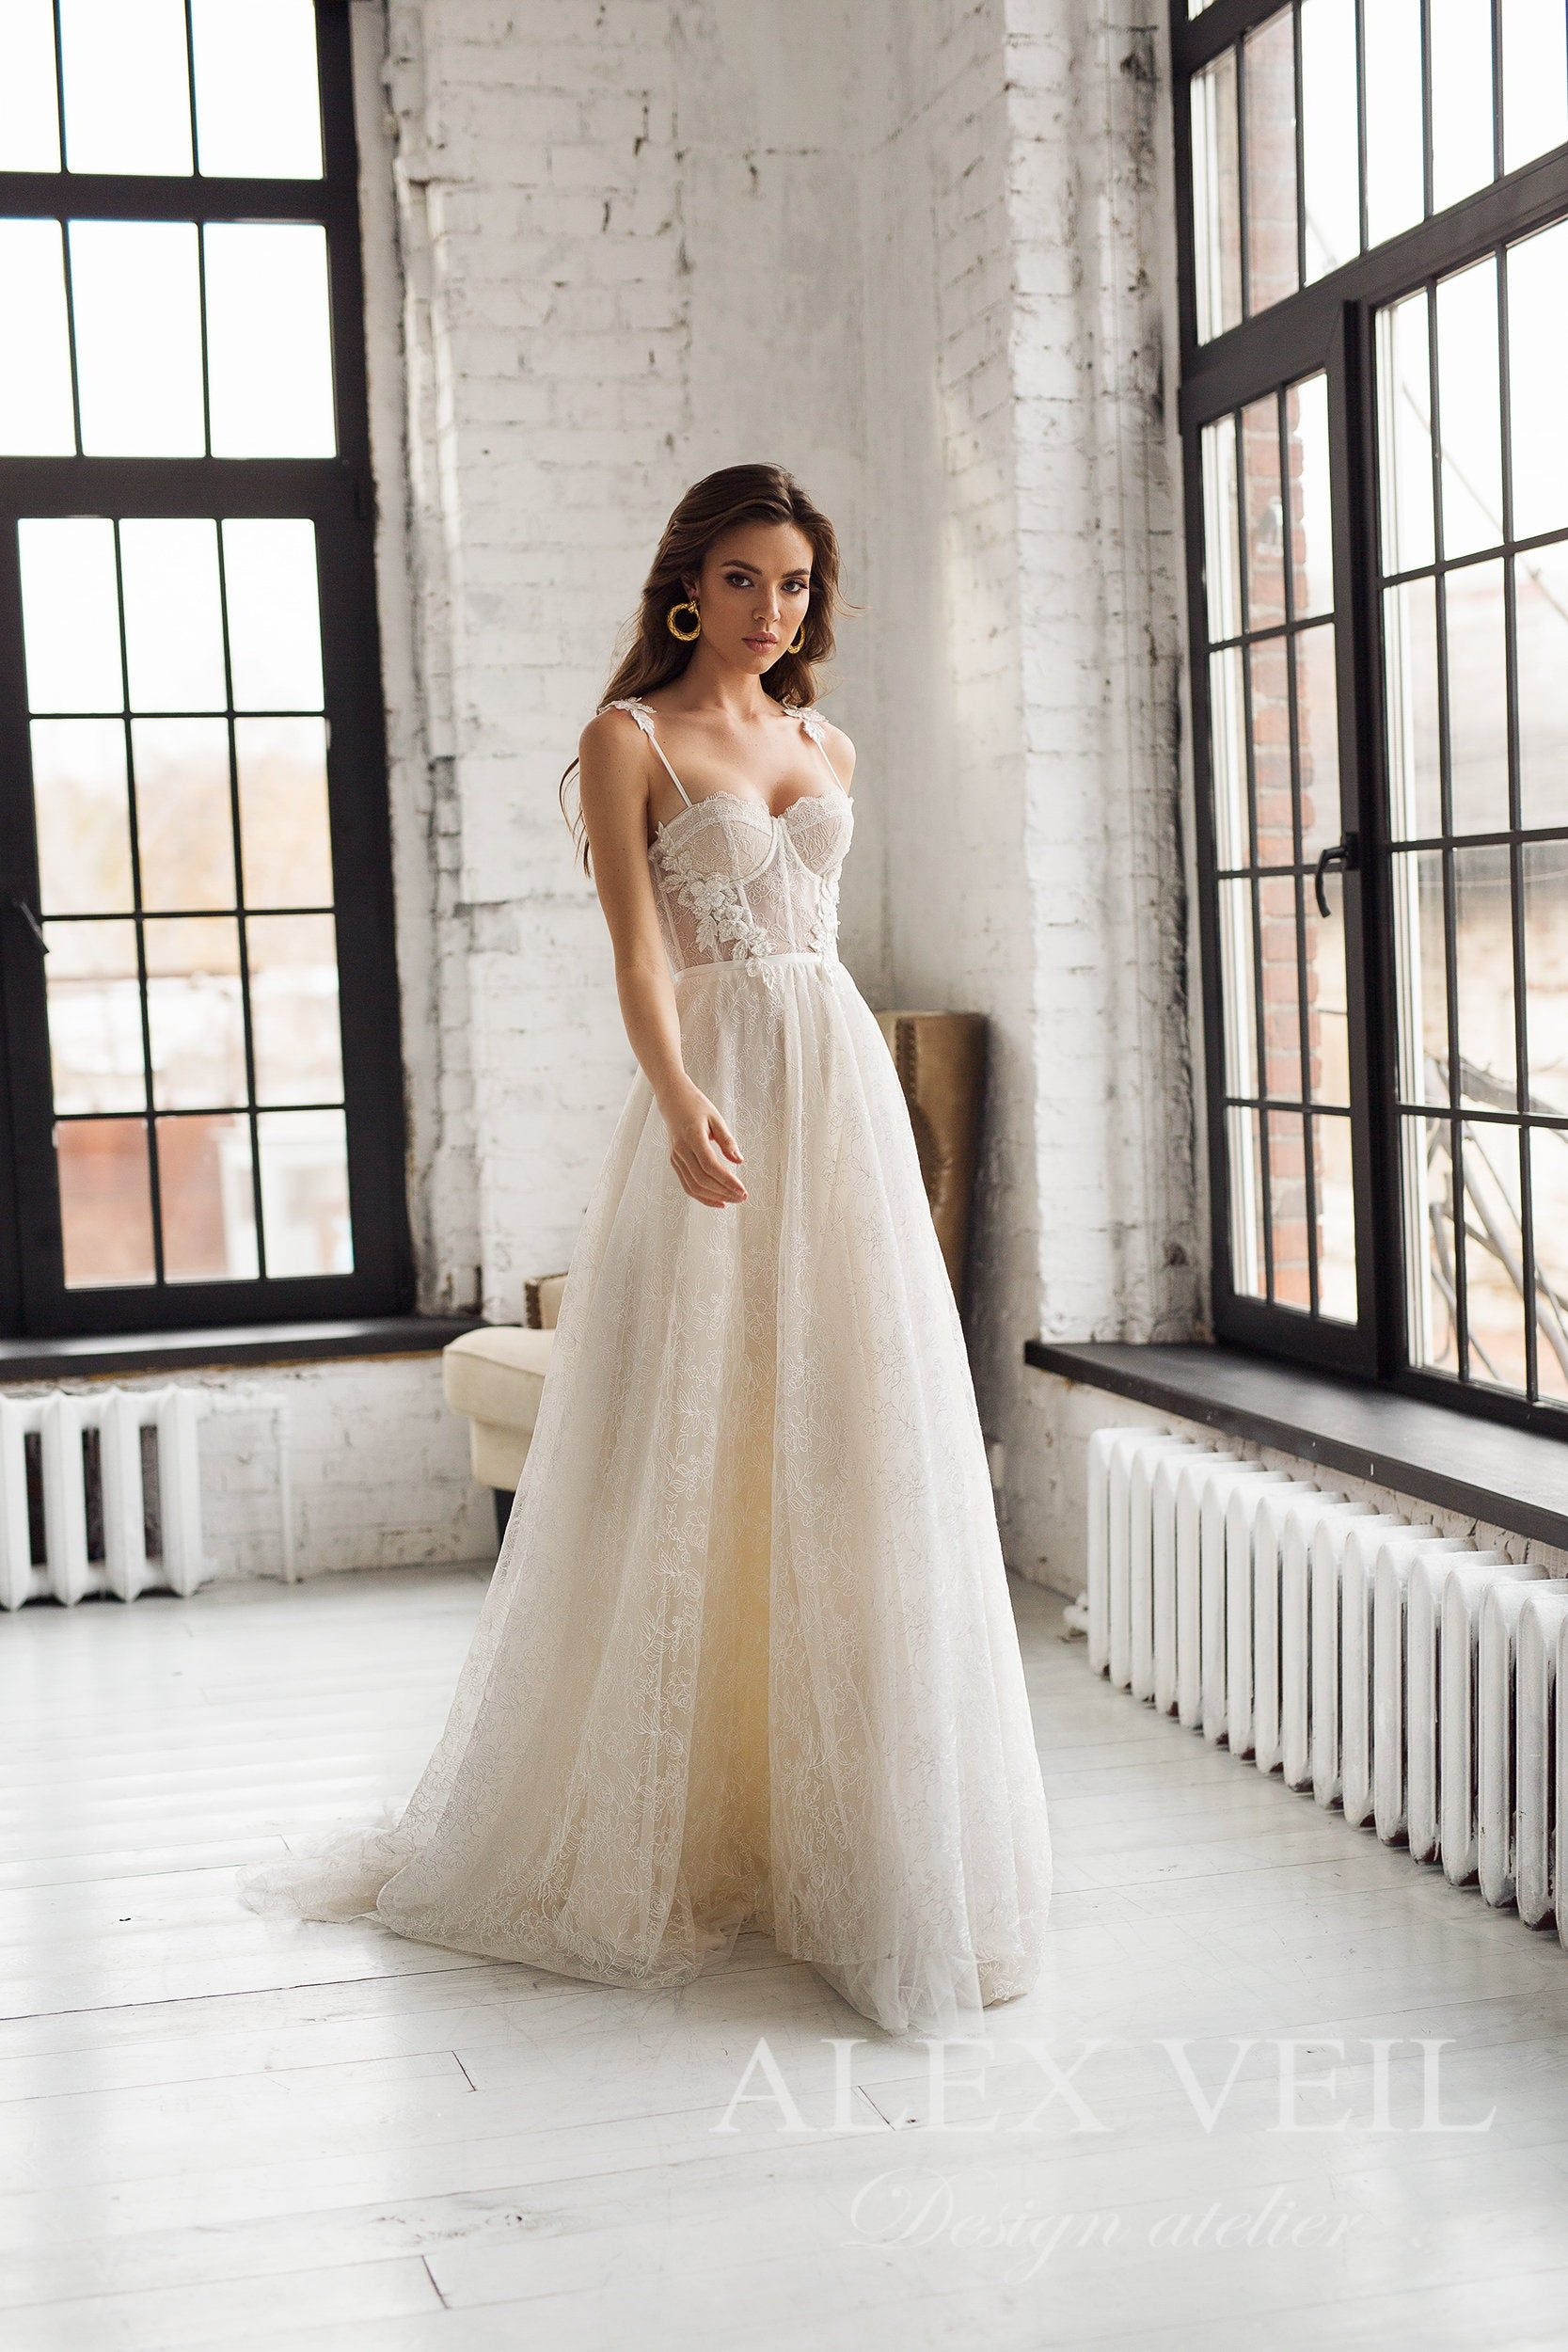 15 Wedding Dresses Under 1000 Dollars Perfete In 2020 Wedding Dresses Wedding Dresses Lace Cream Wedding Dresses